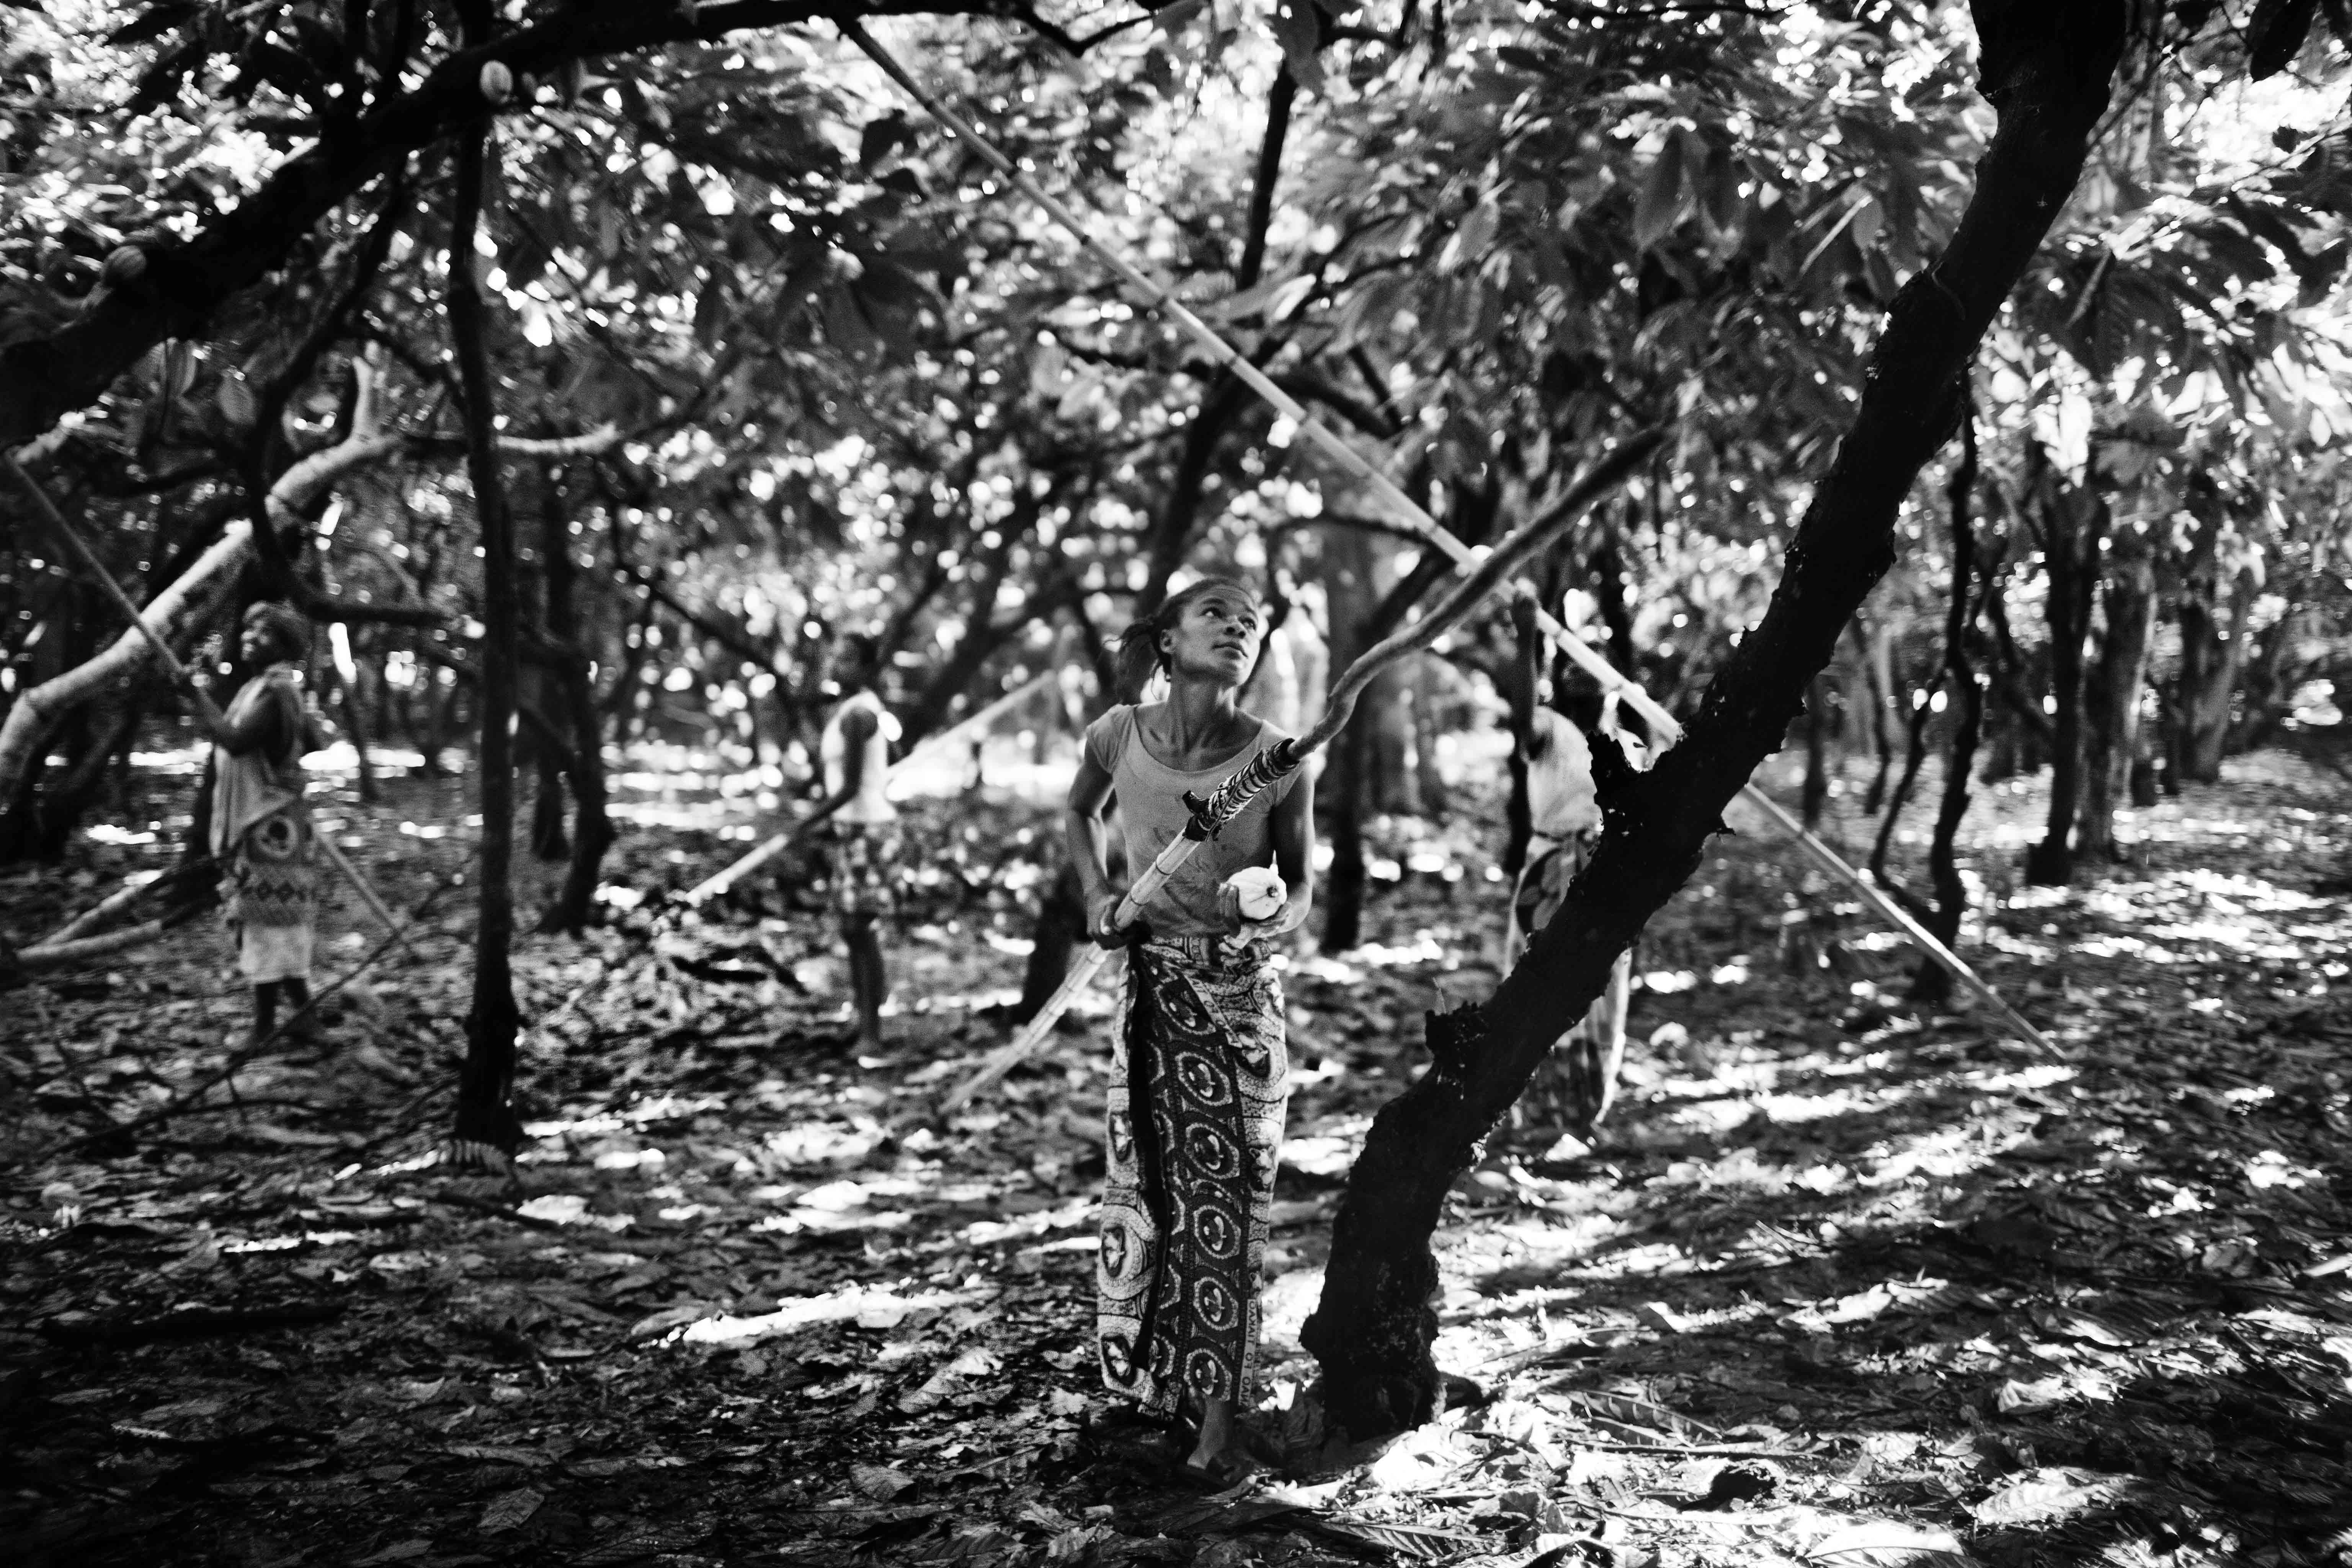 A worker at a large cocoa plantation in Ambanja. March 2013.